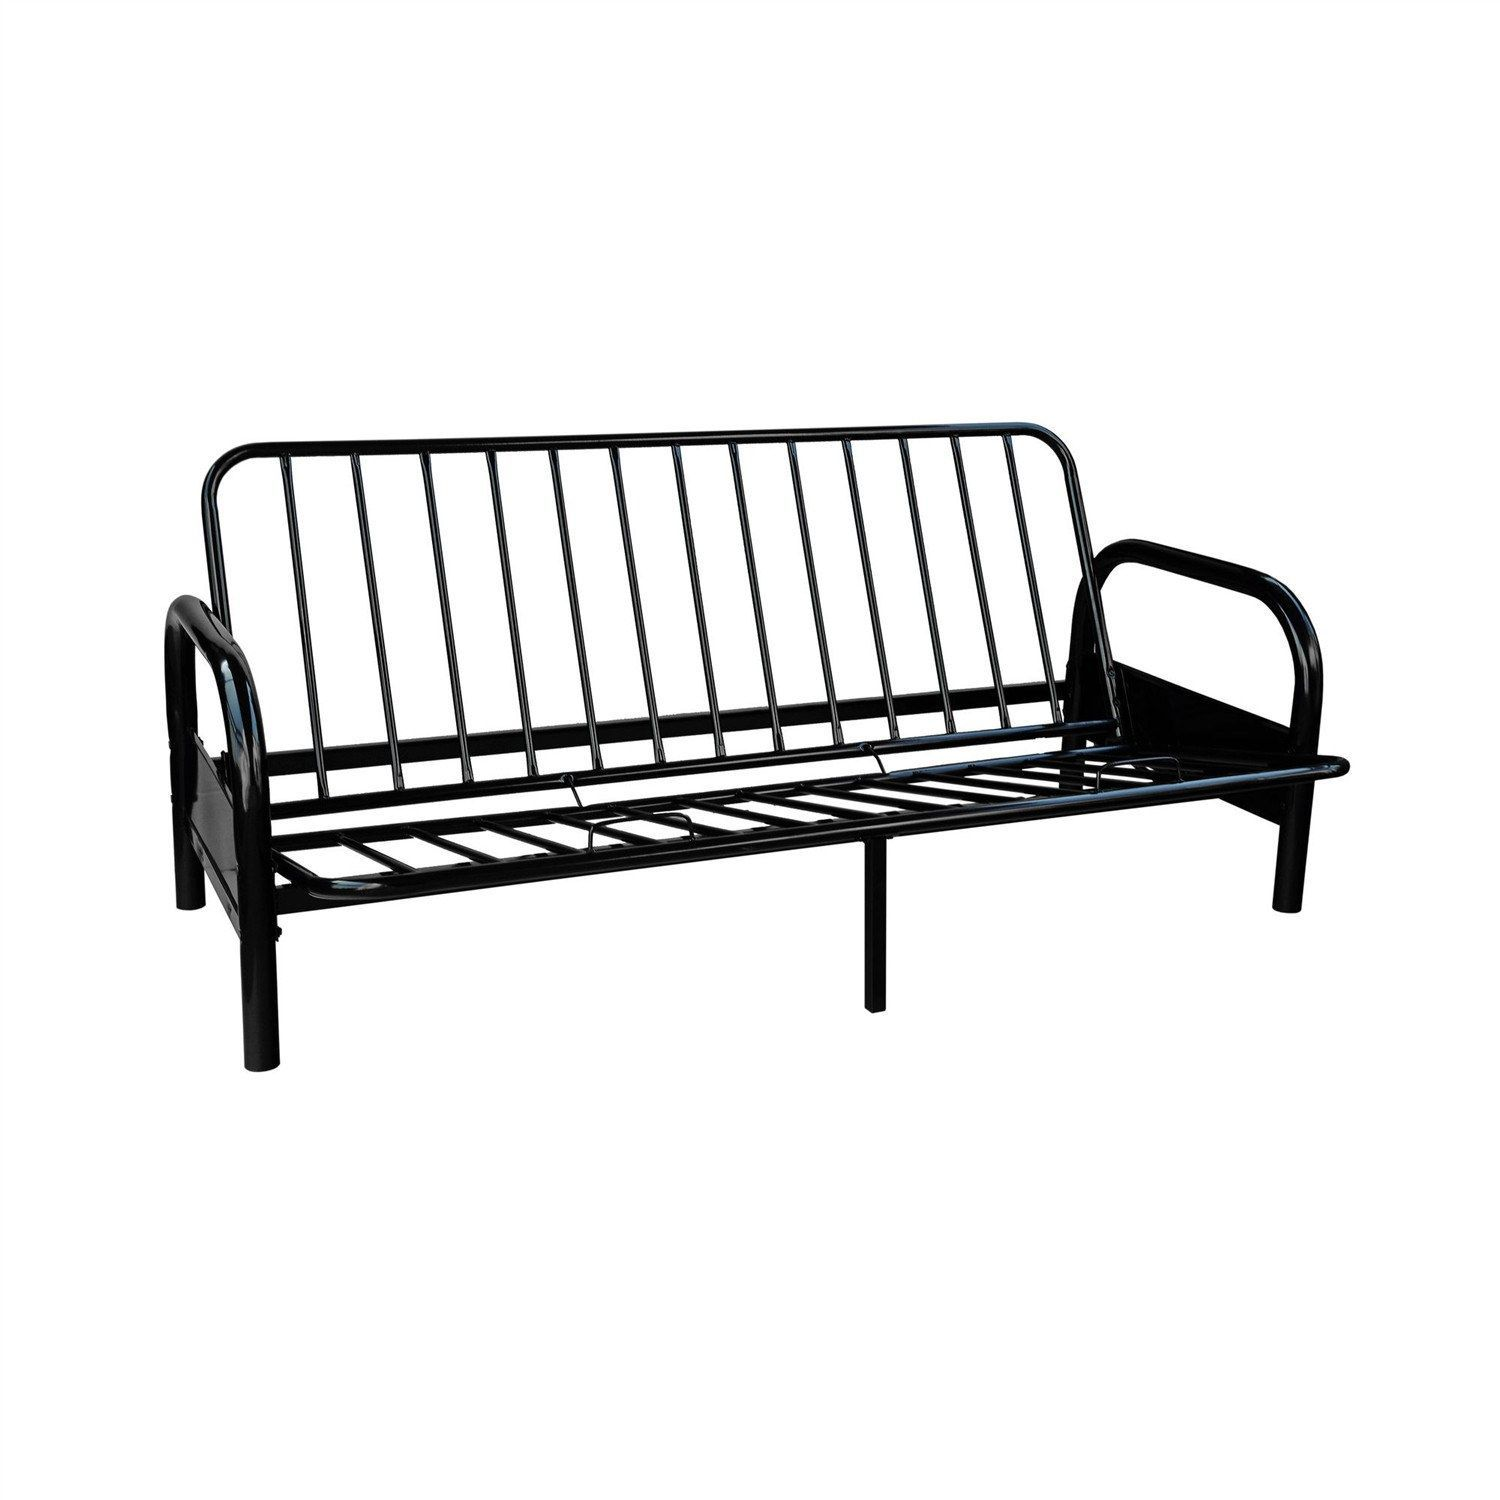 multiple com futon metal futons frame furniture aiden dhp walmart shop black colors